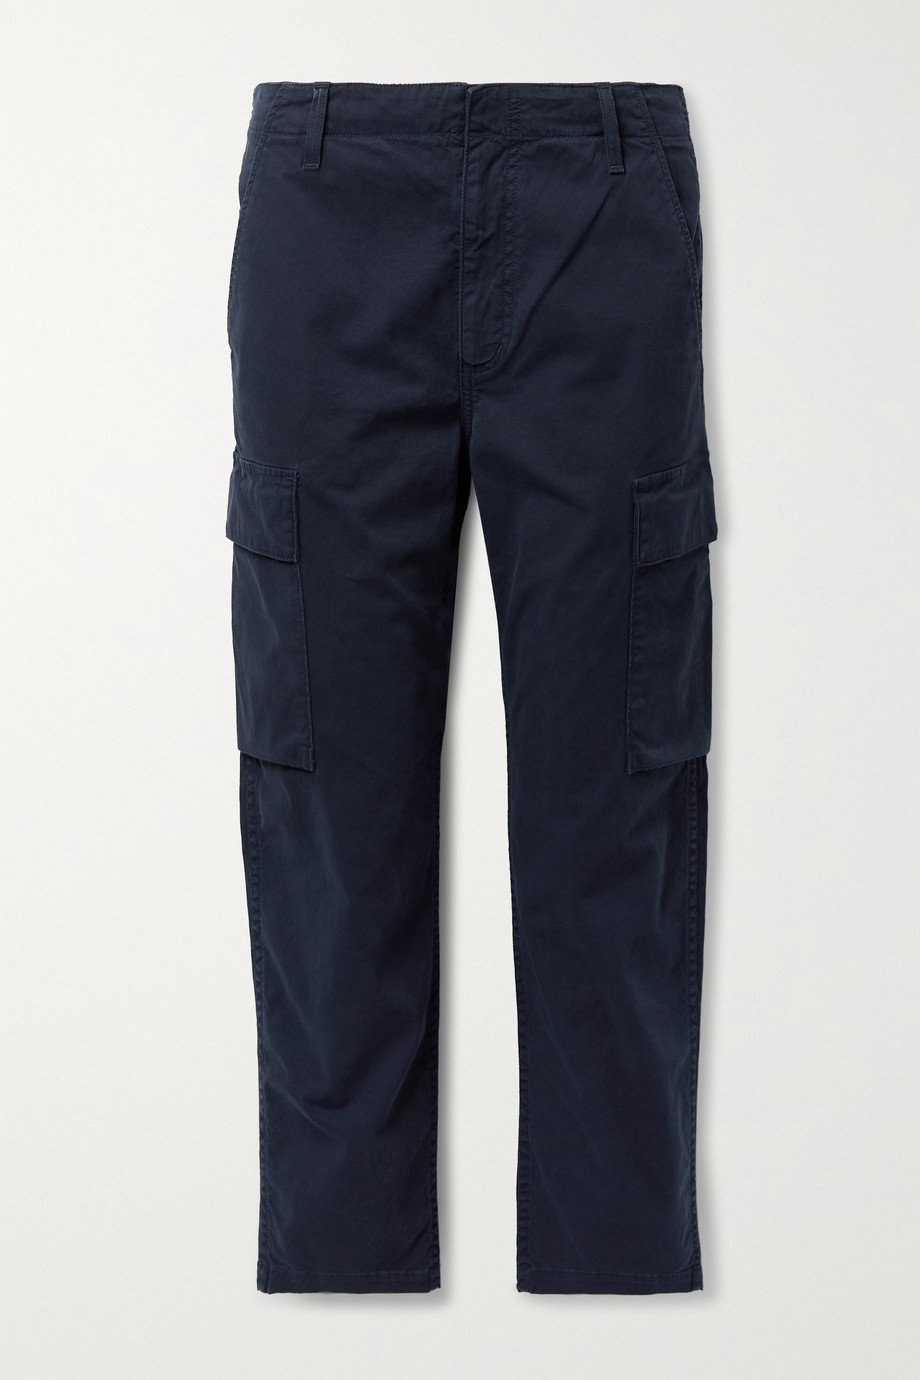 Citizens of Humanity + NET SUSTAIN Gaia cotton-blend twill cargo pants